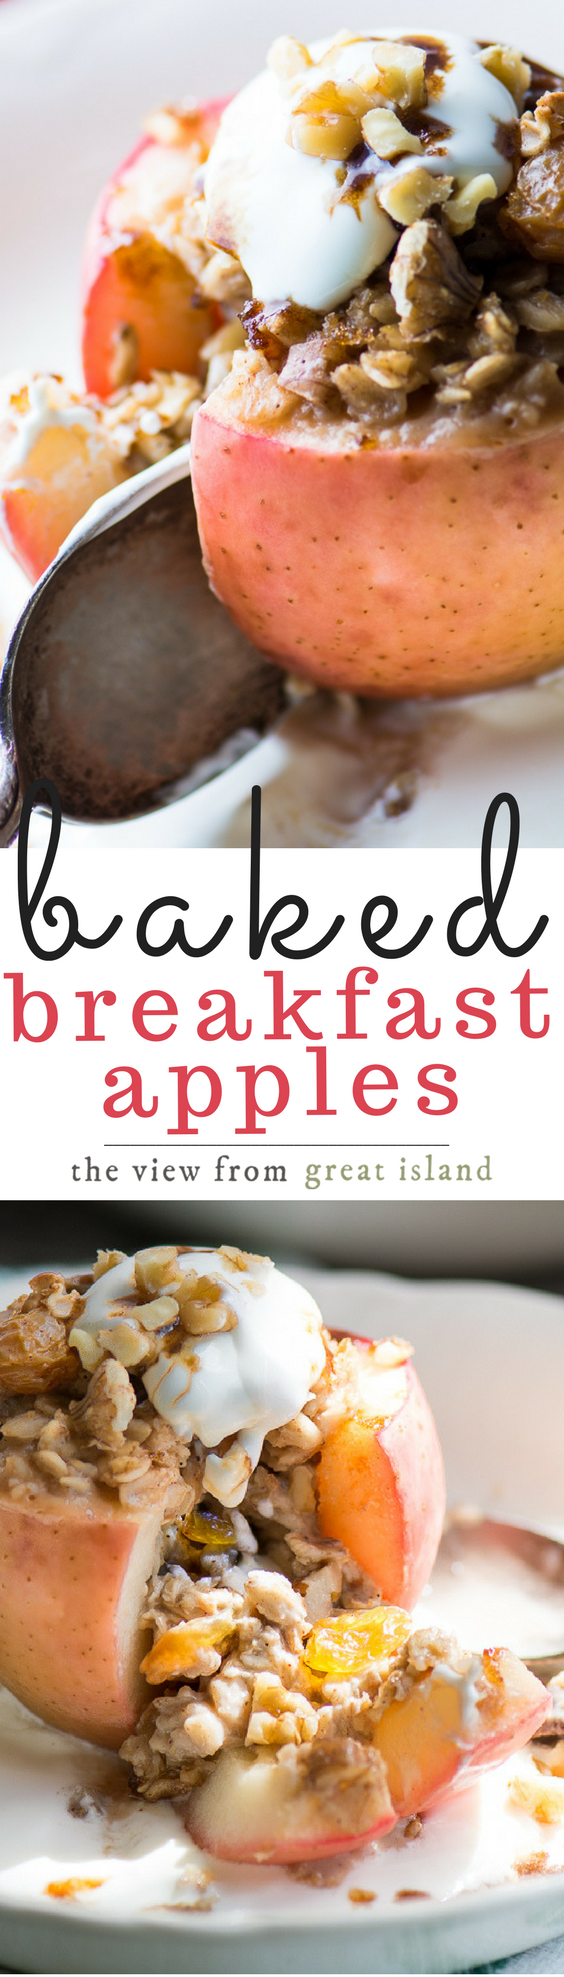 Juicy Baked Breakfast Apples are stuffed with oatmeal, topped with a drizzle of maple syrup and a dollop of whipped cream or yogurt for the coziest breakfast around! #breakfast #brunch #fall #bakedapples #oatmeal #apples #healthybreakfast #backtoschool #bestbakedapples